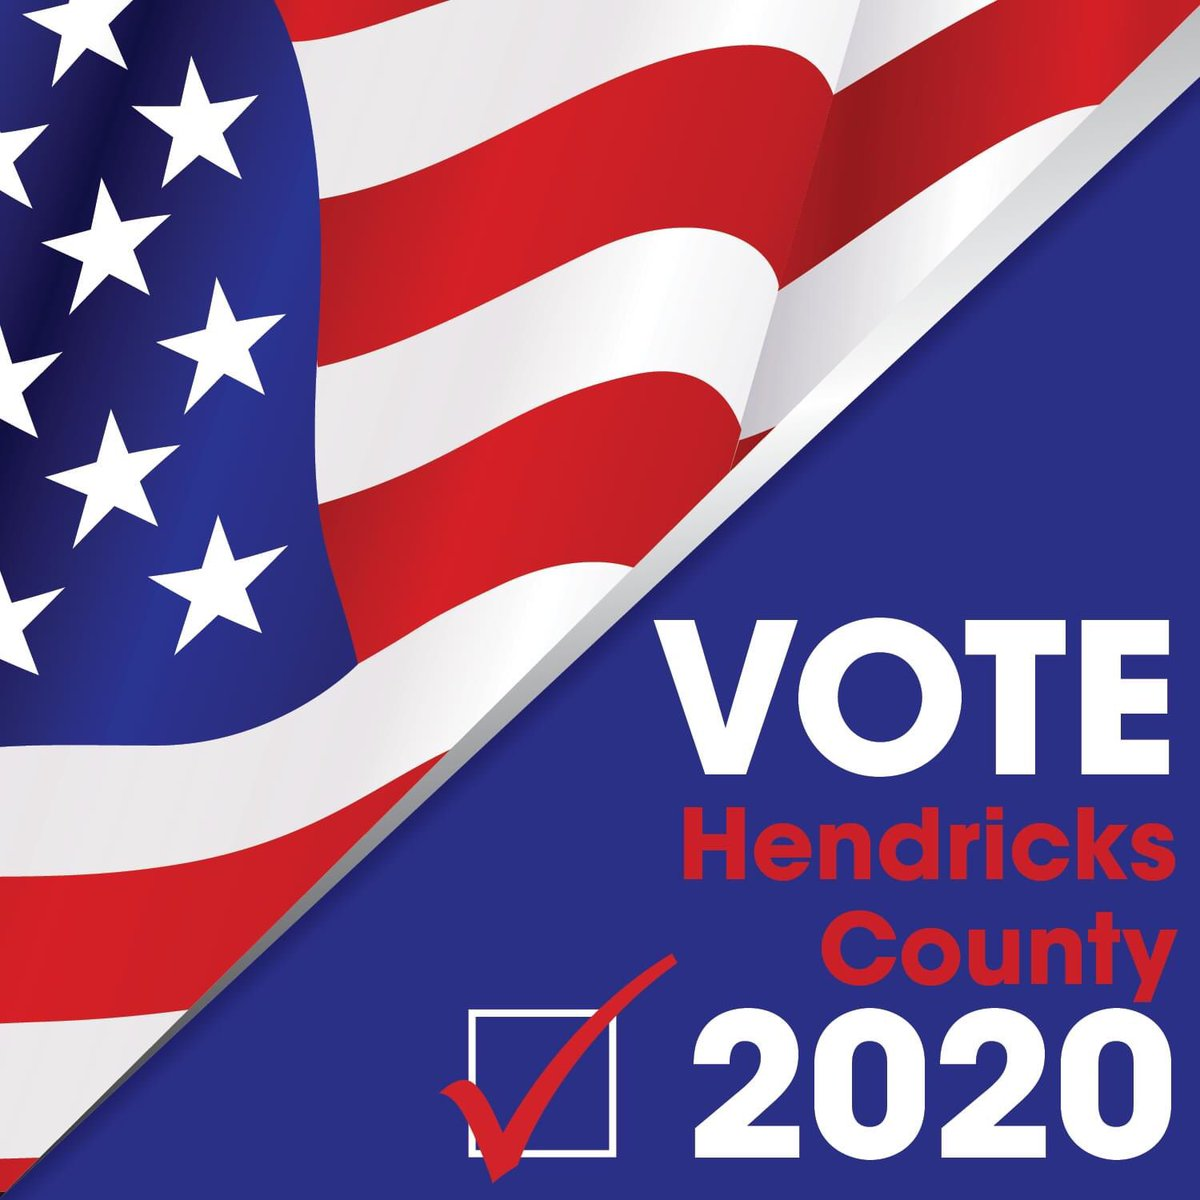 Don't forget it's Indiana's primary.  VOTE Hendricks County ✔️ 2020 Primary. Polling locations map.   https://t.co/PvnpyDnerr https://t.co/l0JrtDwd5c